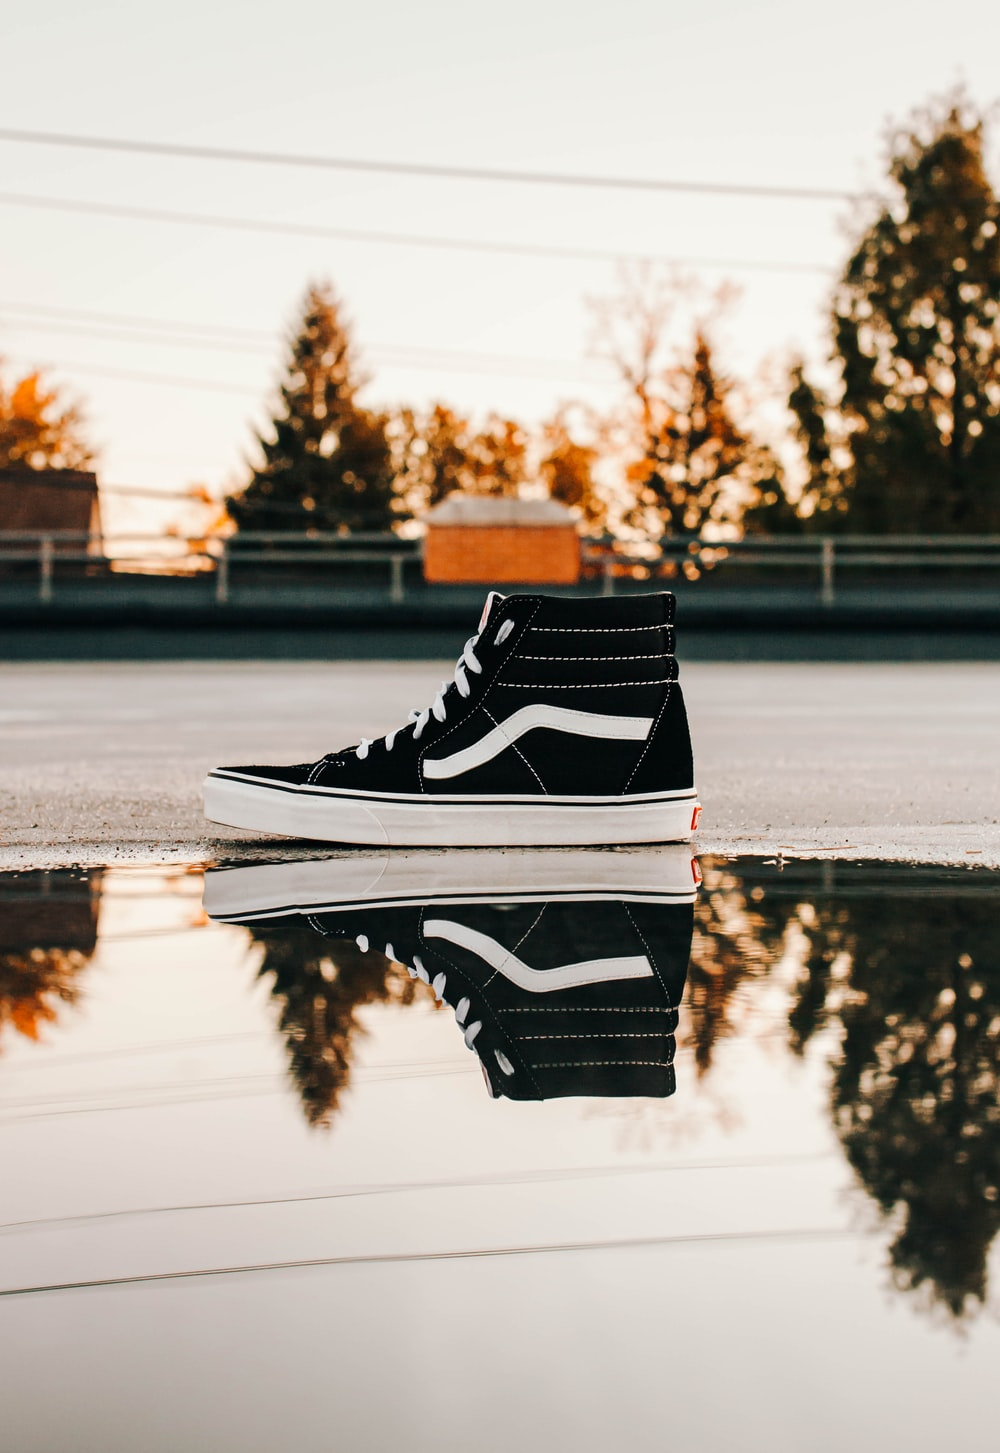 unpaired black and white Vans sneakers